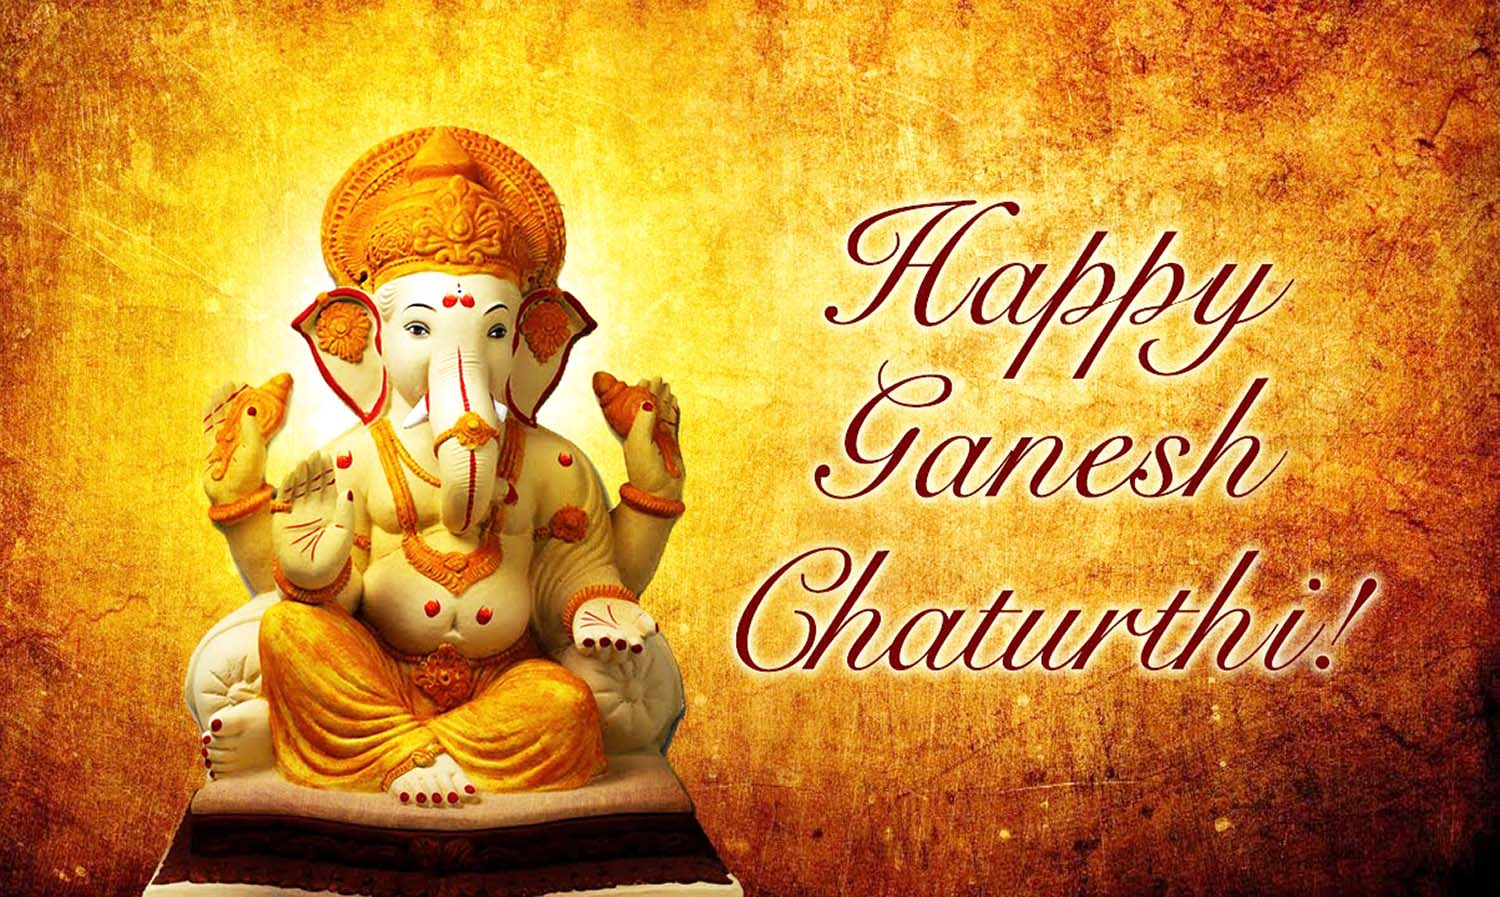 Clay idol happy Ganesh chaturthi wallpaper!